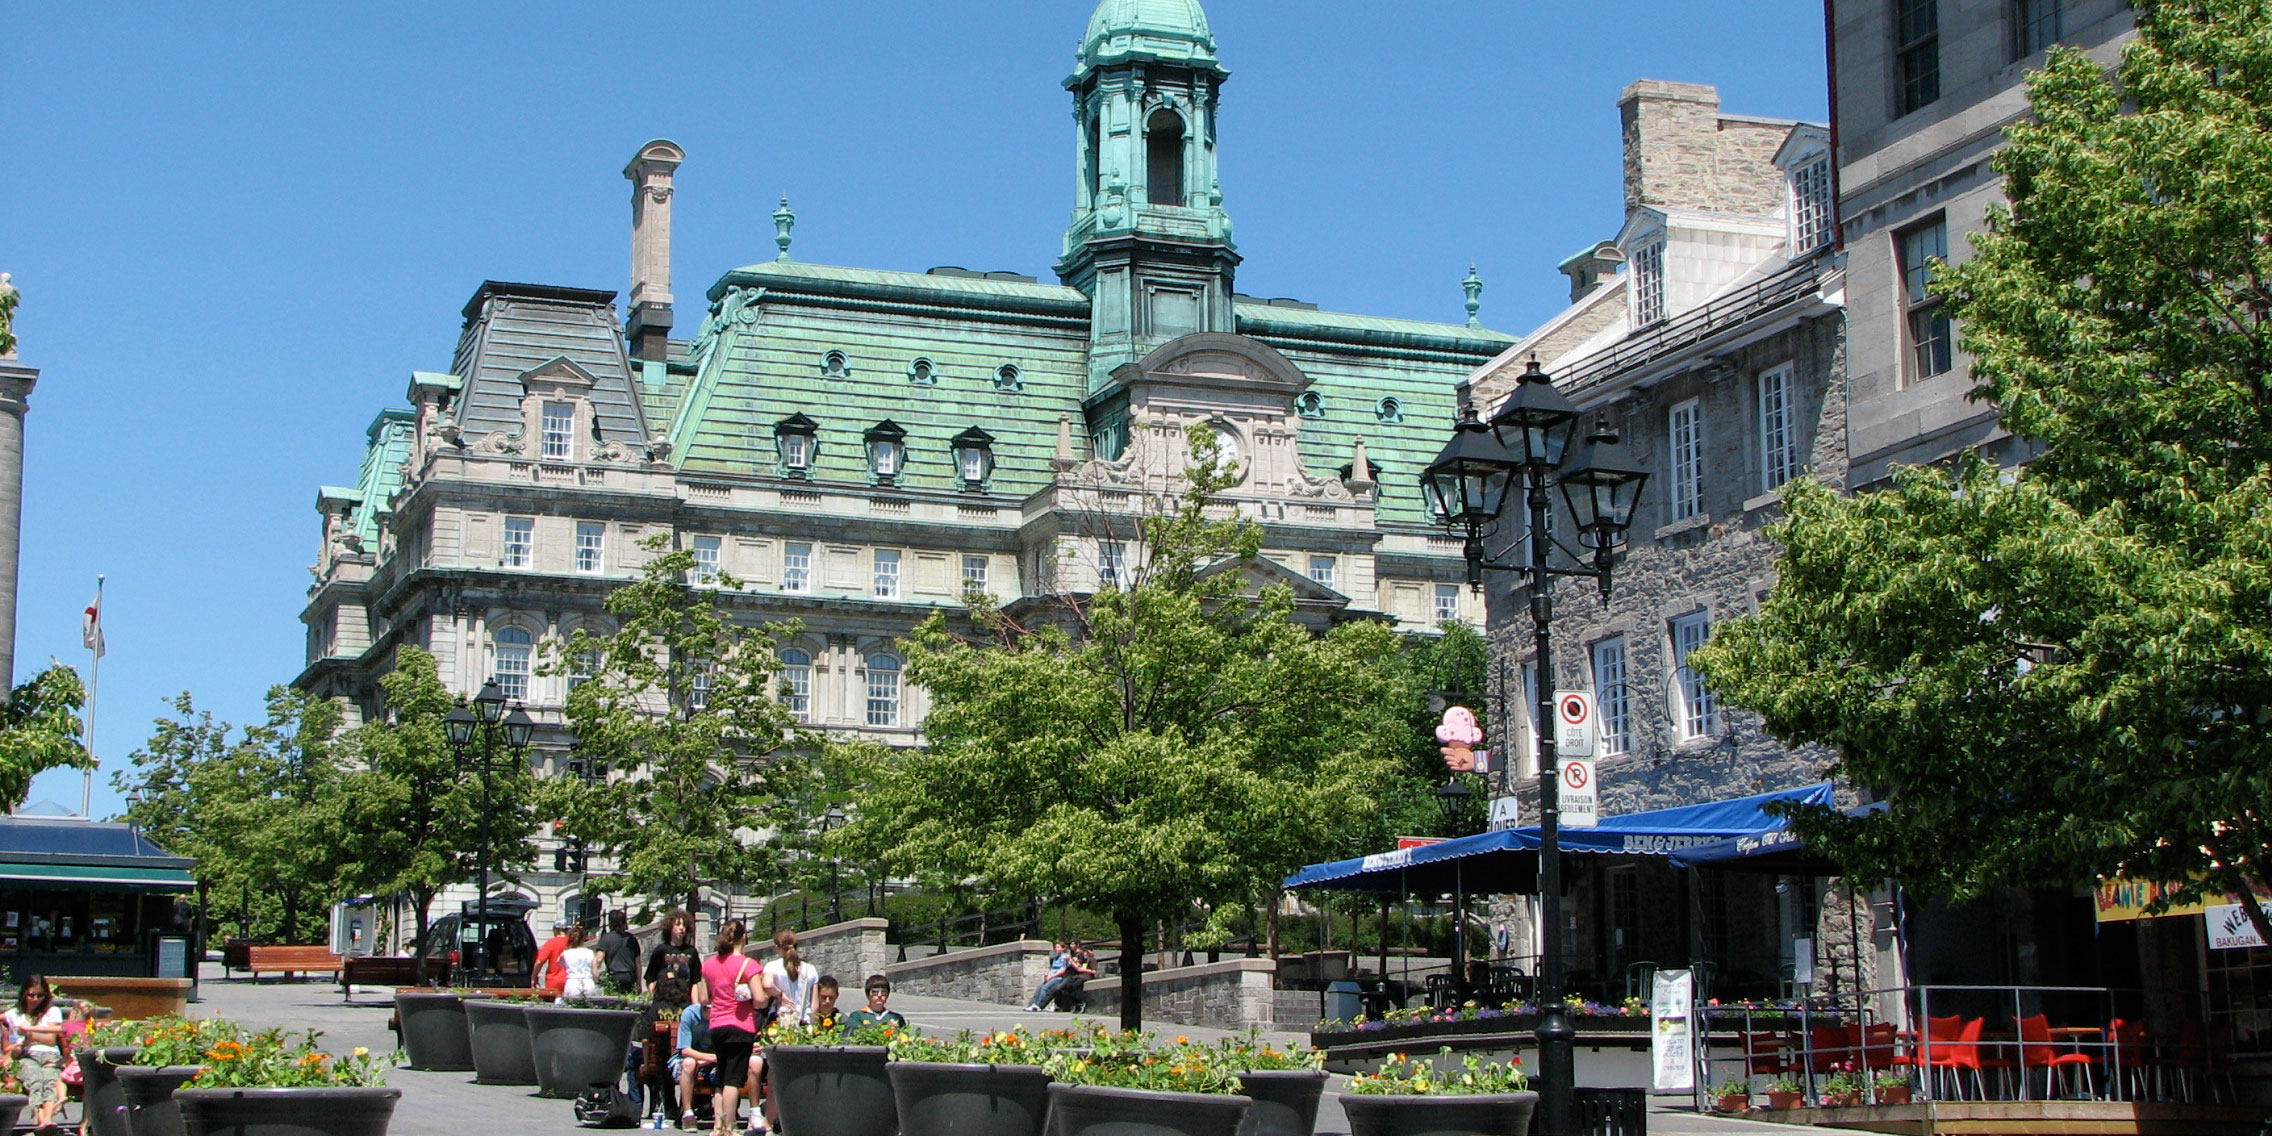 the Personal Brand Architect's home town Montreal